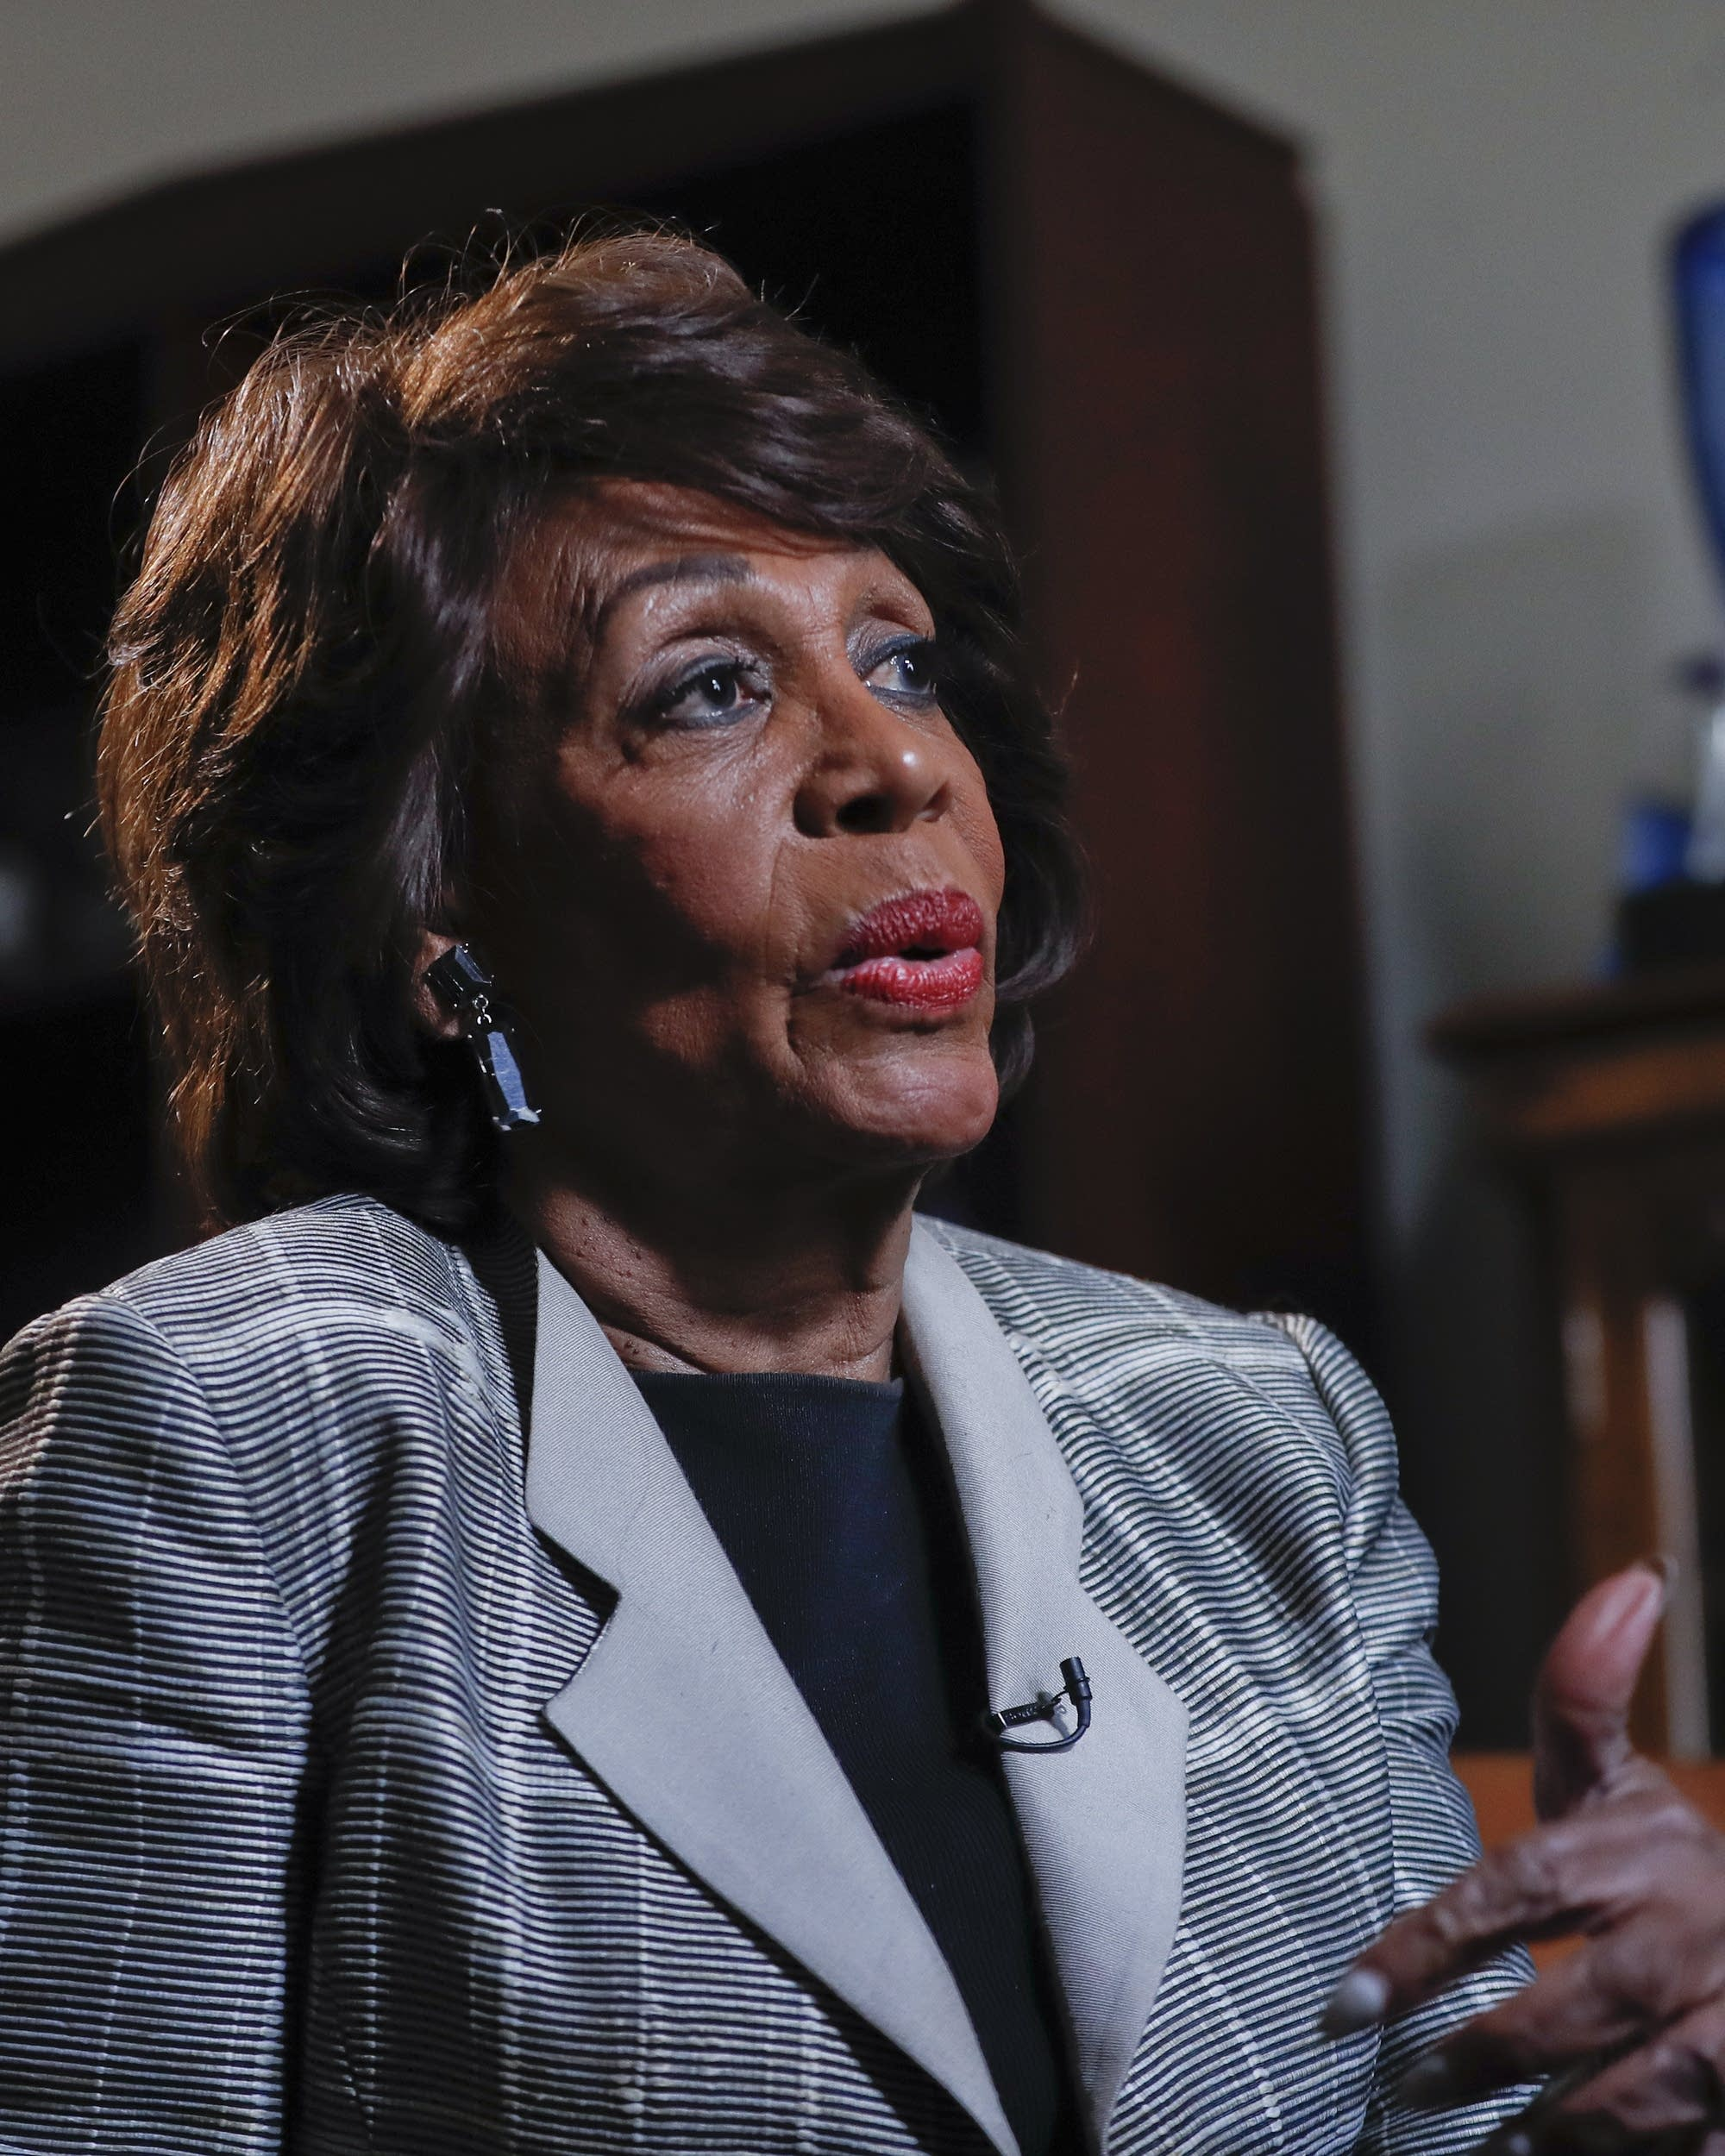 Rep Maxine Waters No Holds Barred Remarks Find Fans Mpr News